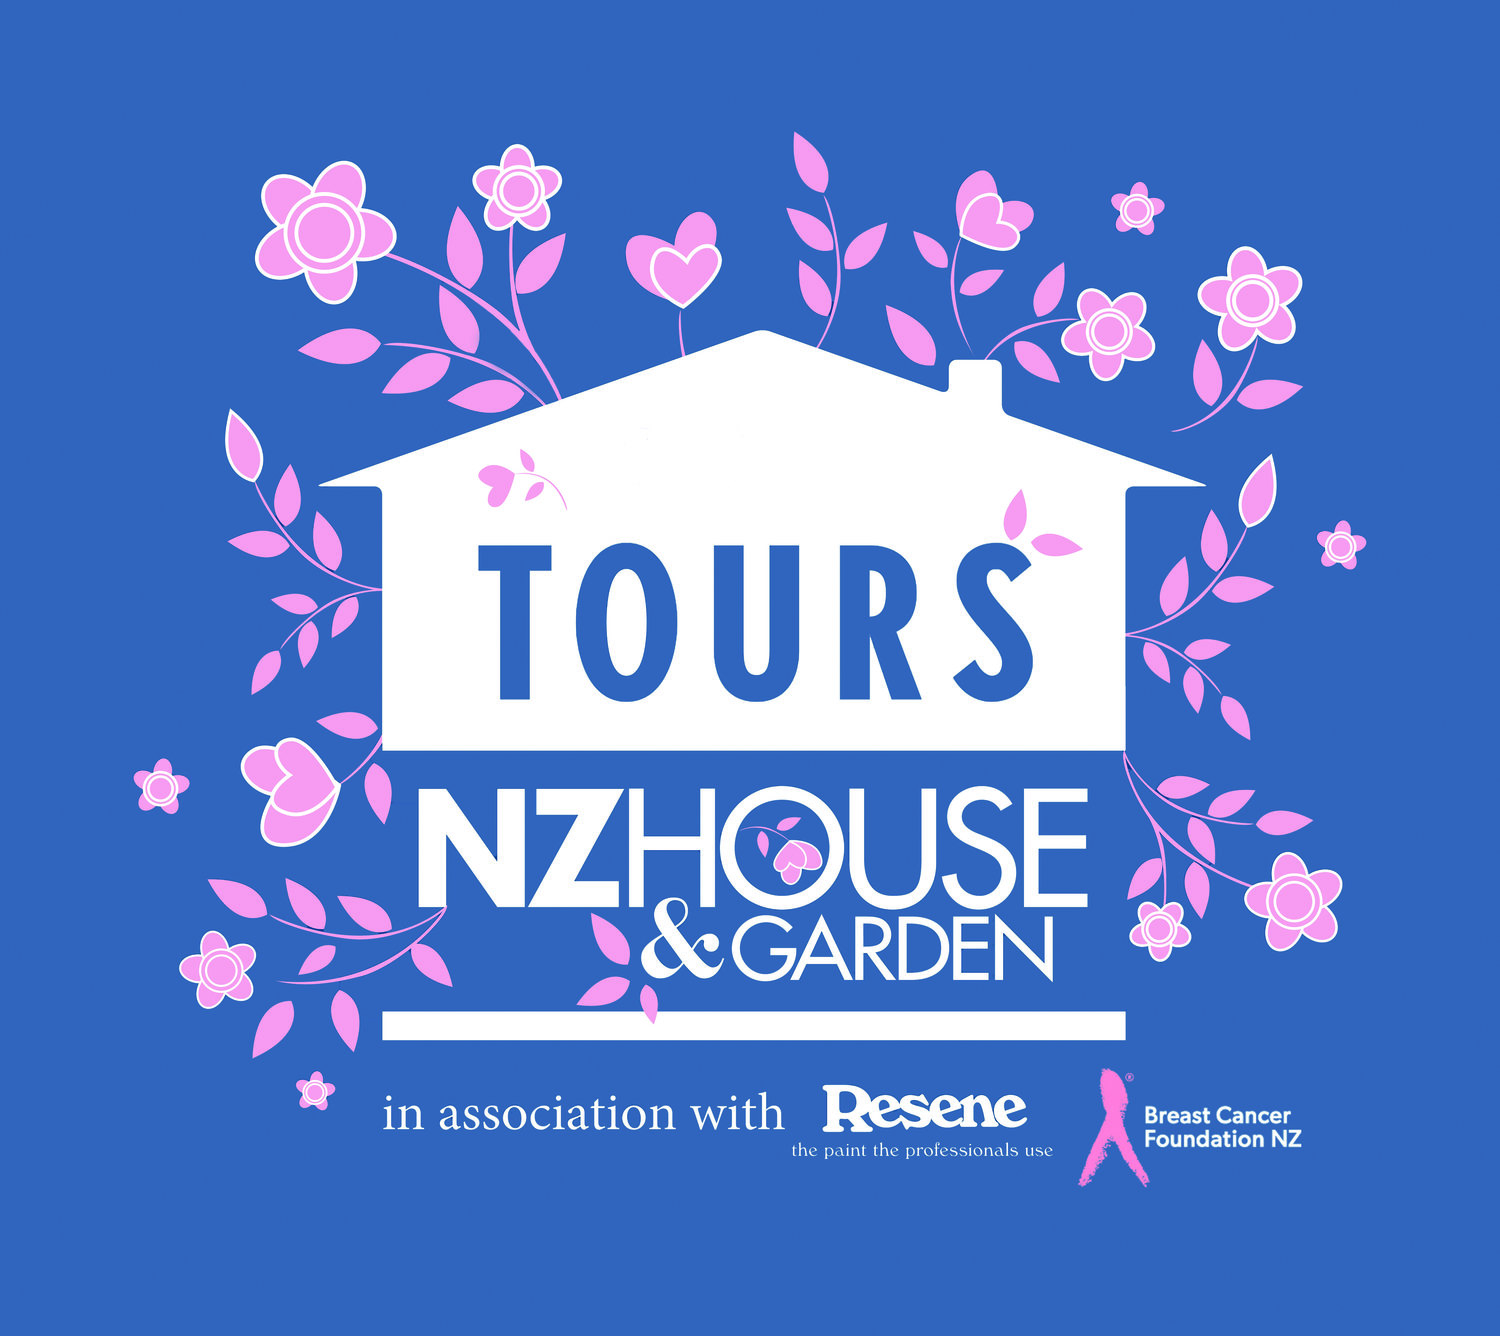 NZ House & Garden Tours